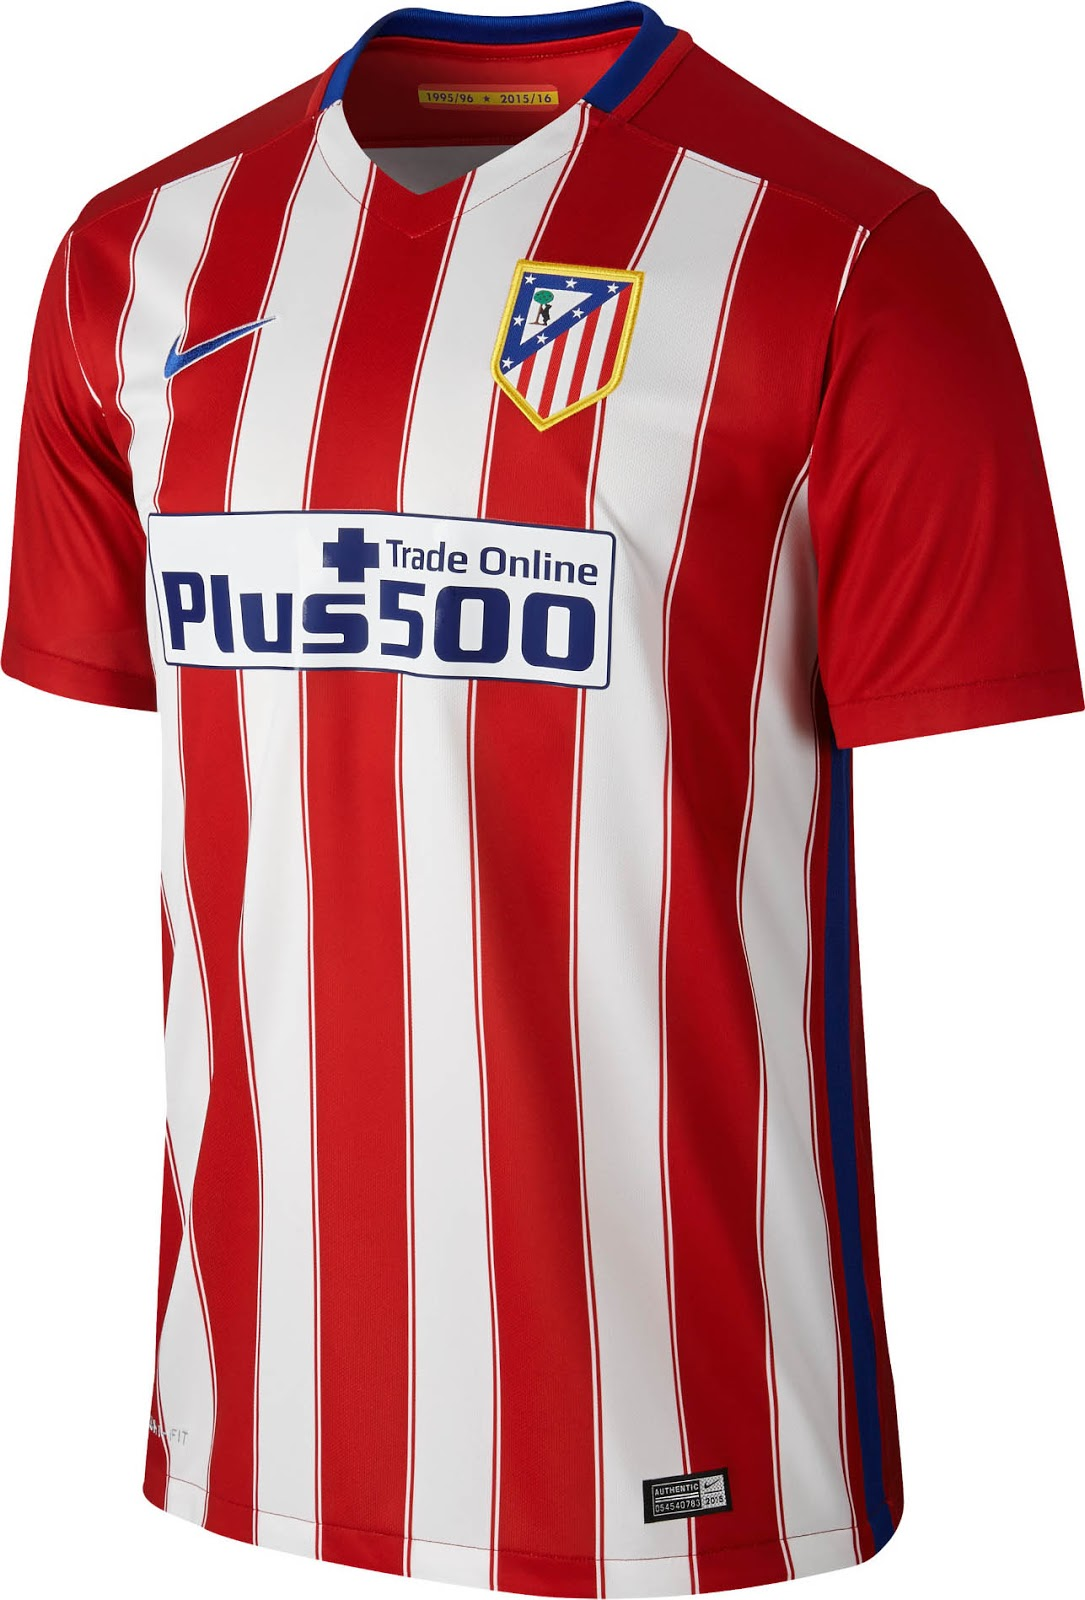 97a5d8b38 atletico madrid 2015 kit on sale   OFF75% Discounts